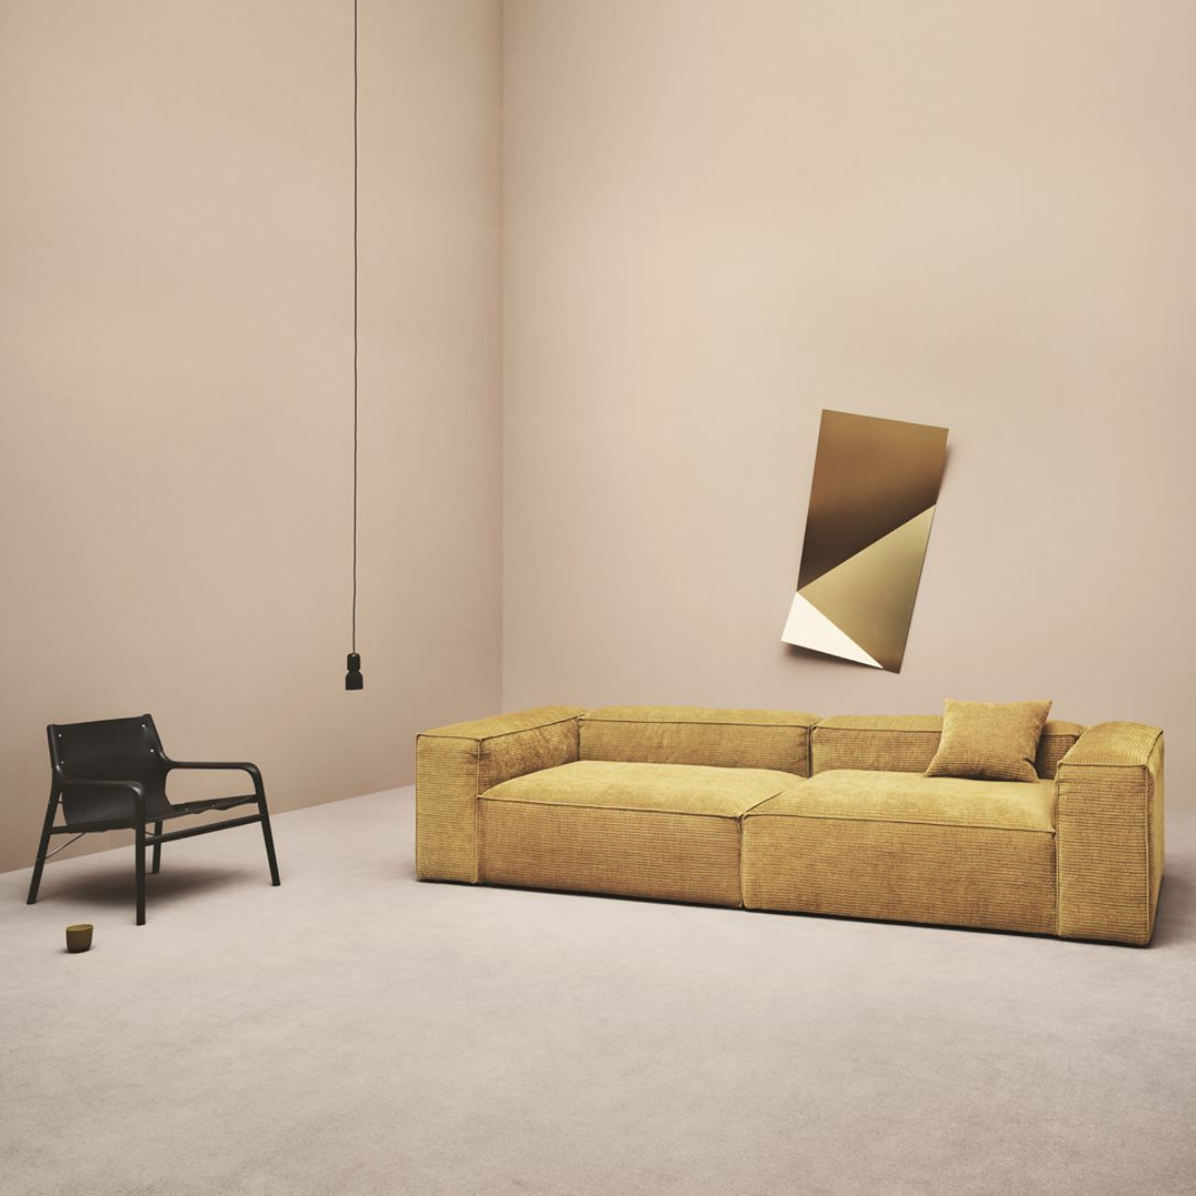 Mustard yellow sofa.